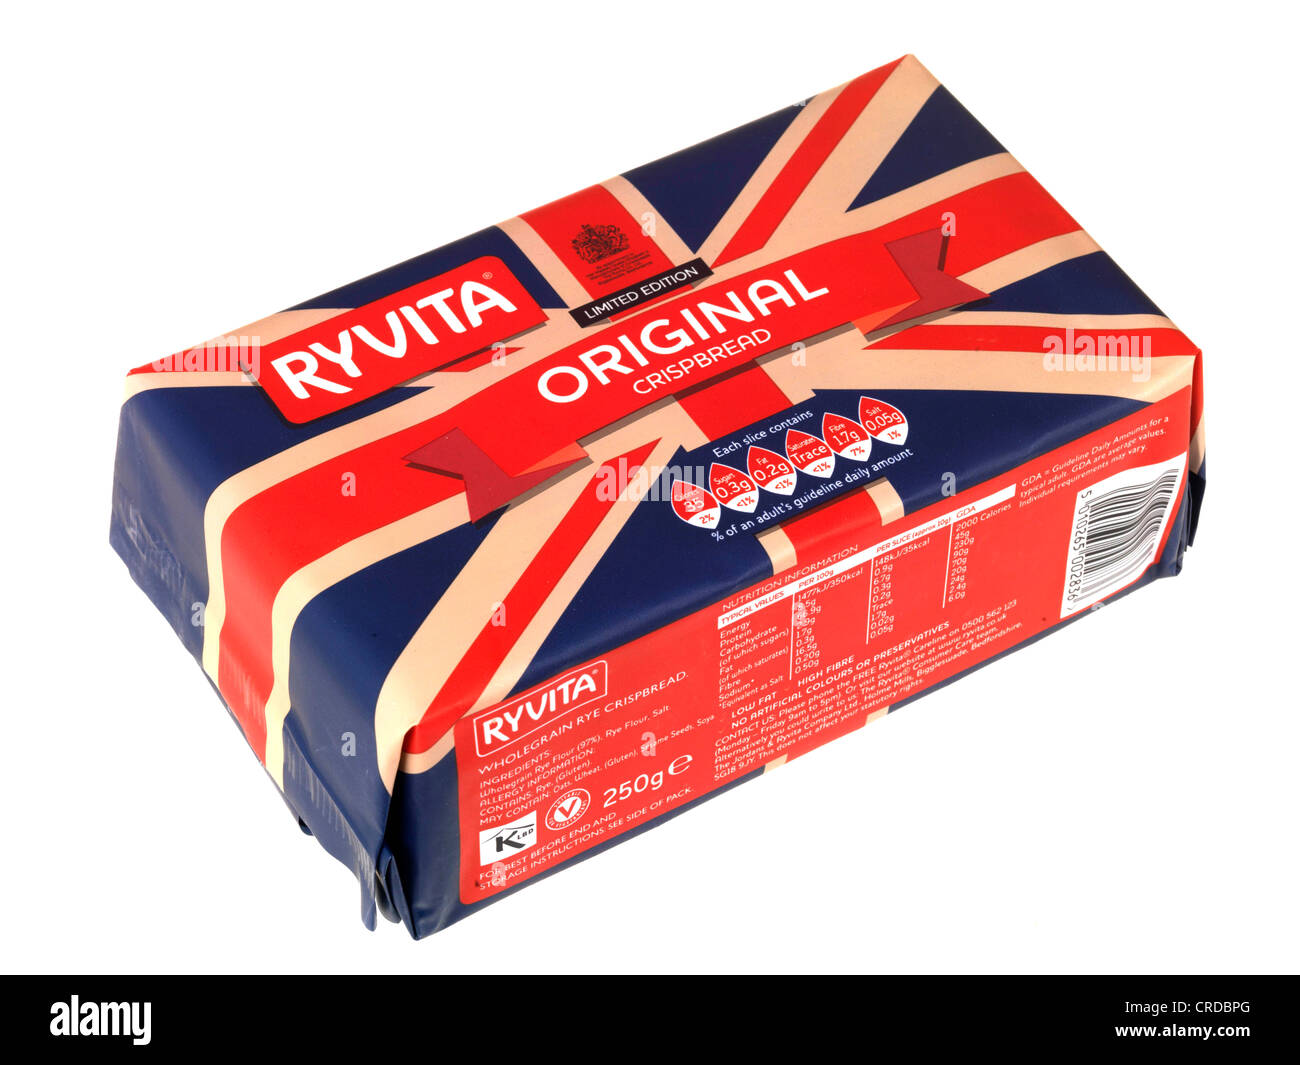 Ryvita Original Crackers - Stock Image